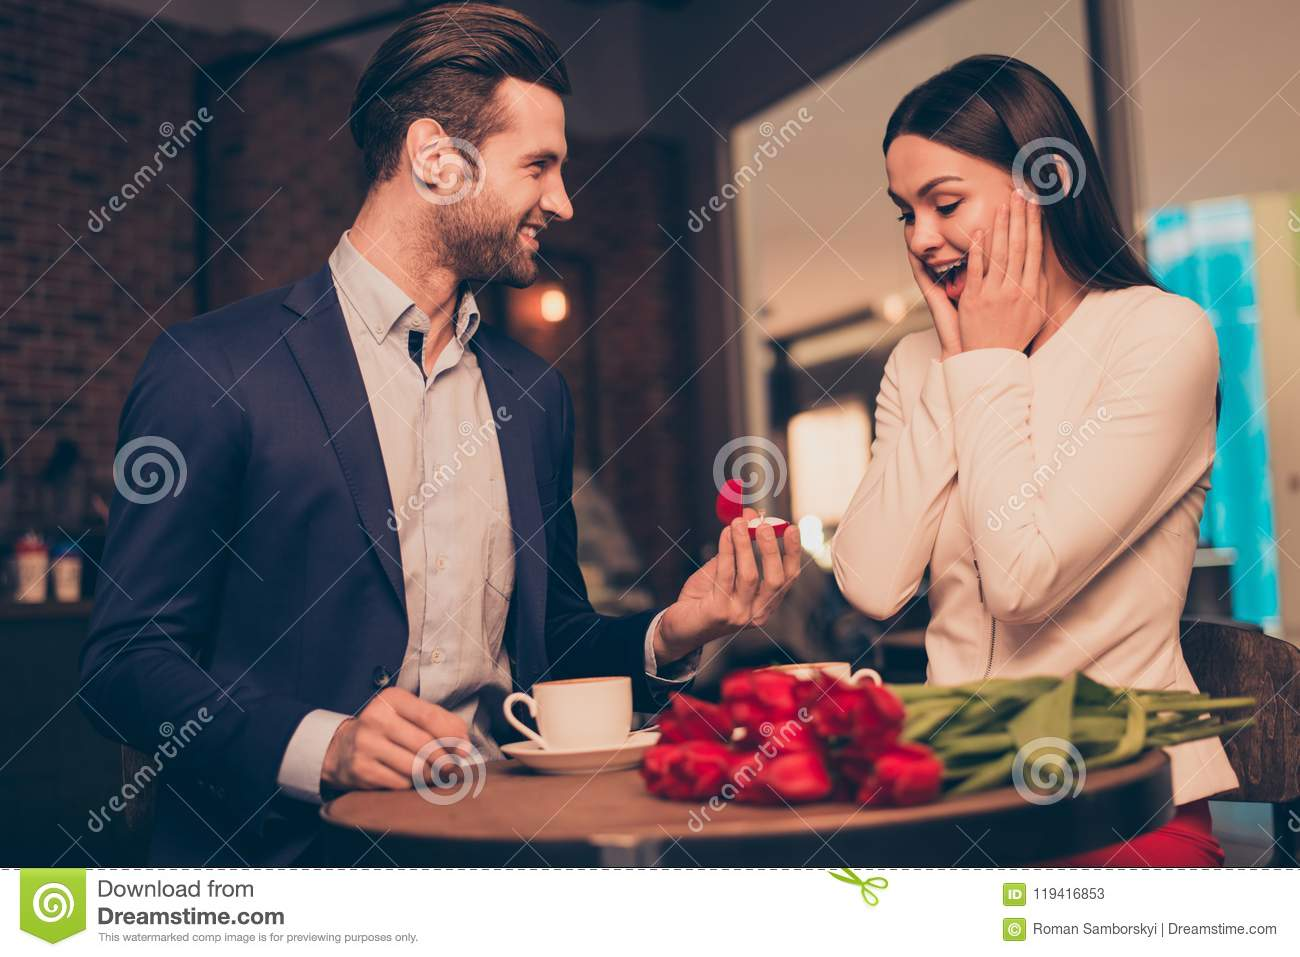 Making proposal in a cafe with ring and flowers unexpected moment honeymoon jewelry ring diamond golden concept wife husband